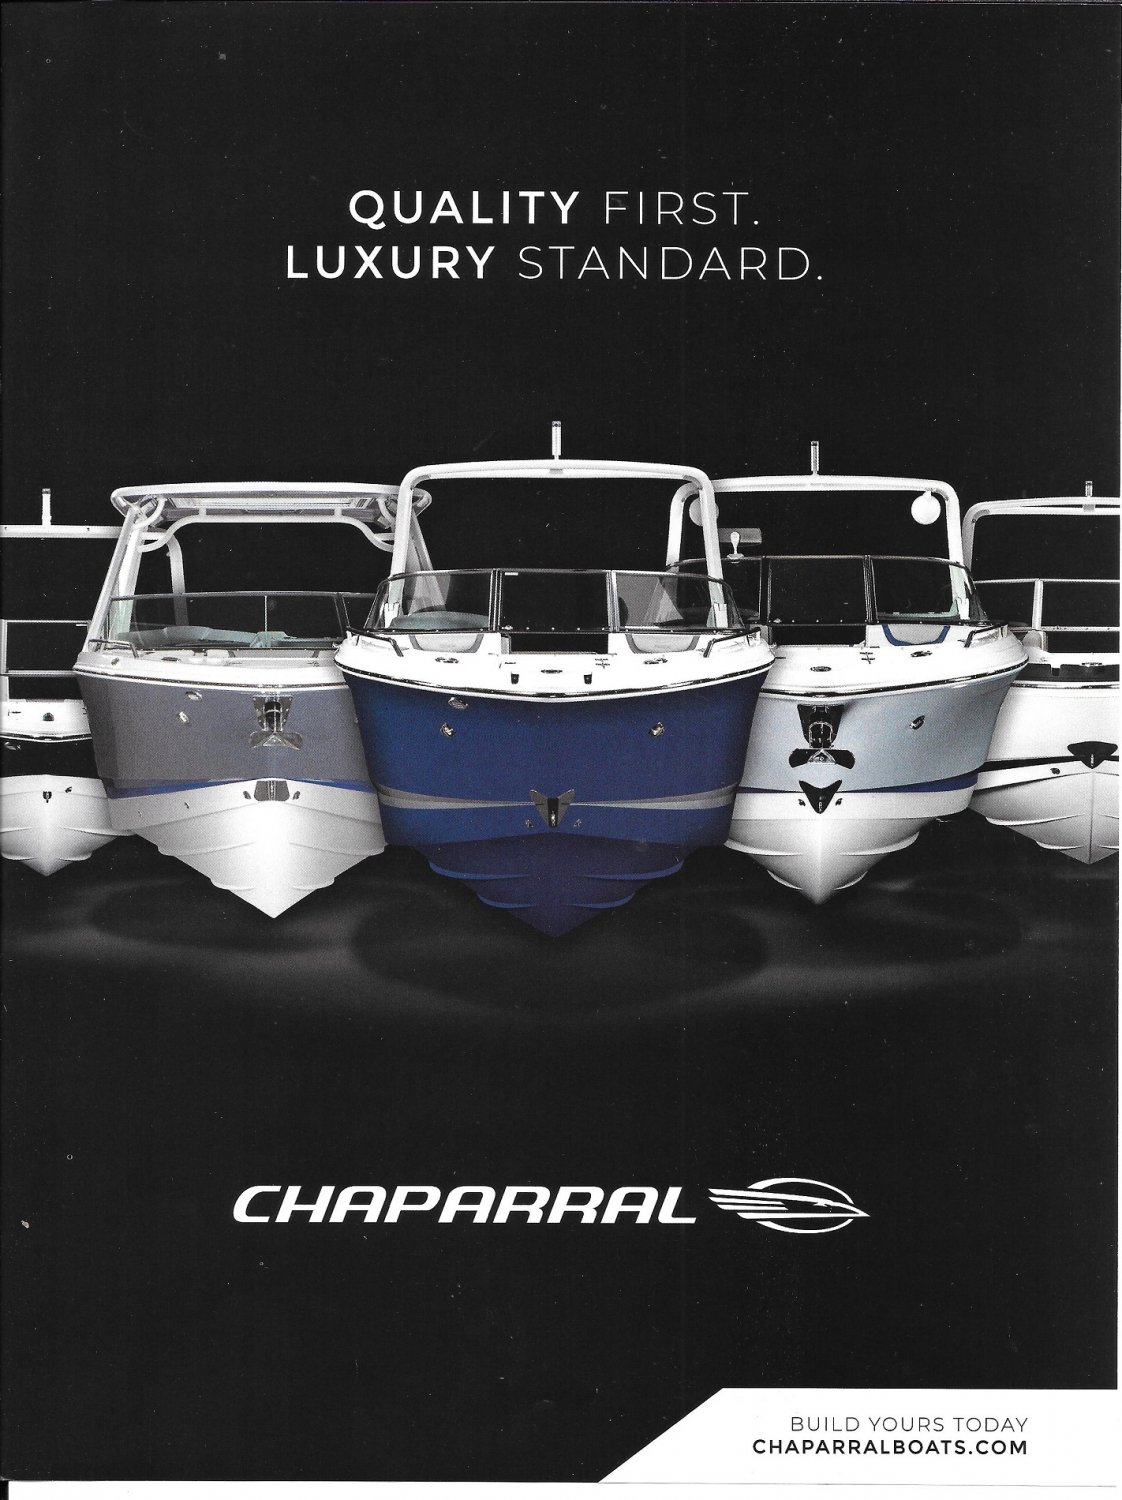 2021 Chaparral Boats Color Ad- Nice Photo